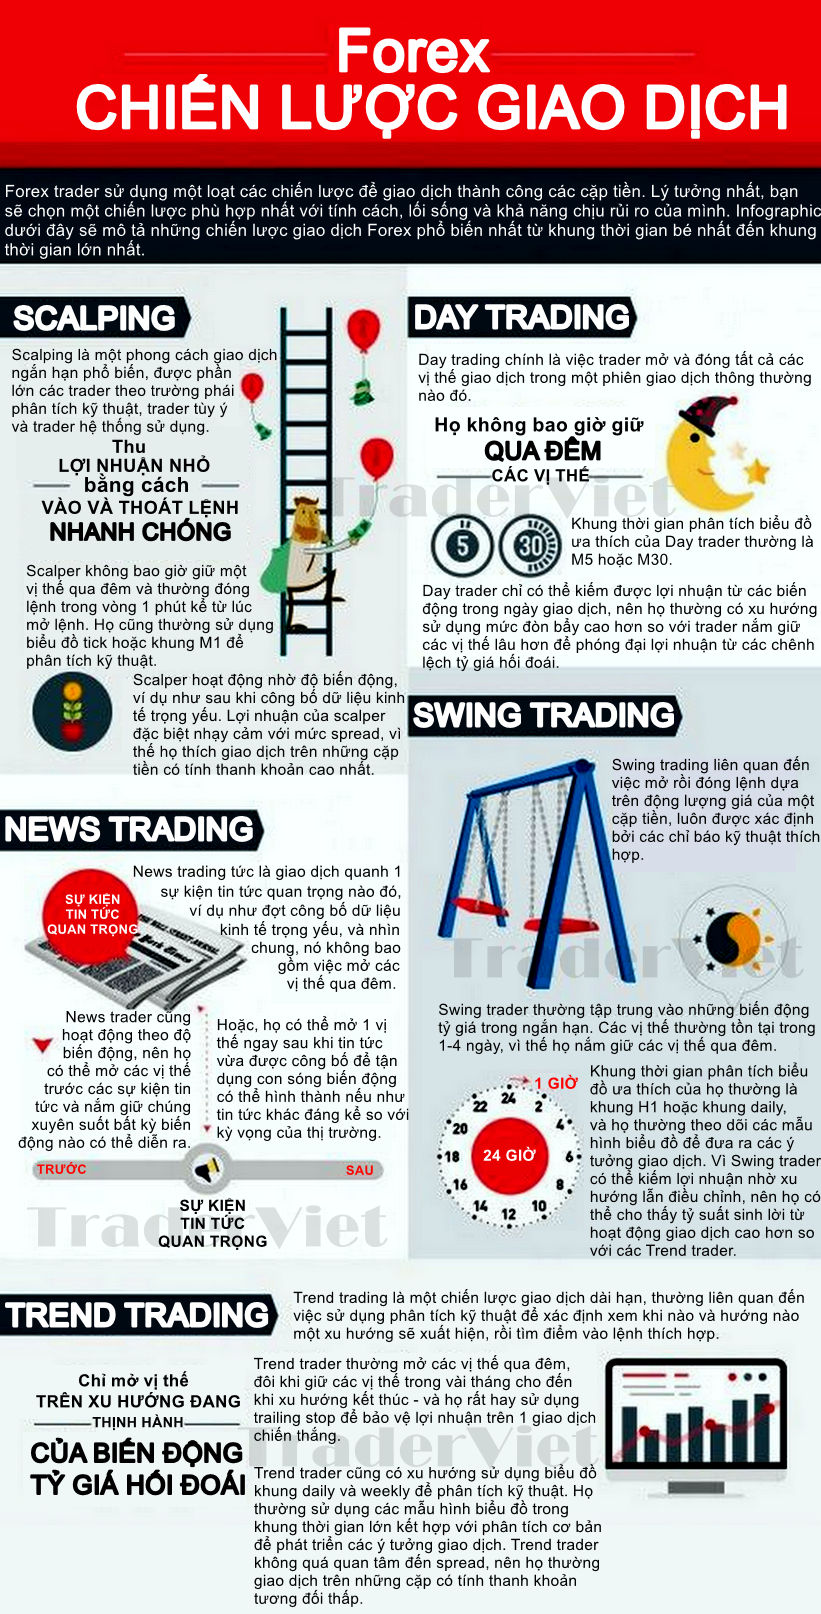 INFOGRAPHIC-Cac-kieu-chien-luoc-pho-bien-trong-giao-dich-Forex-TraderViet.